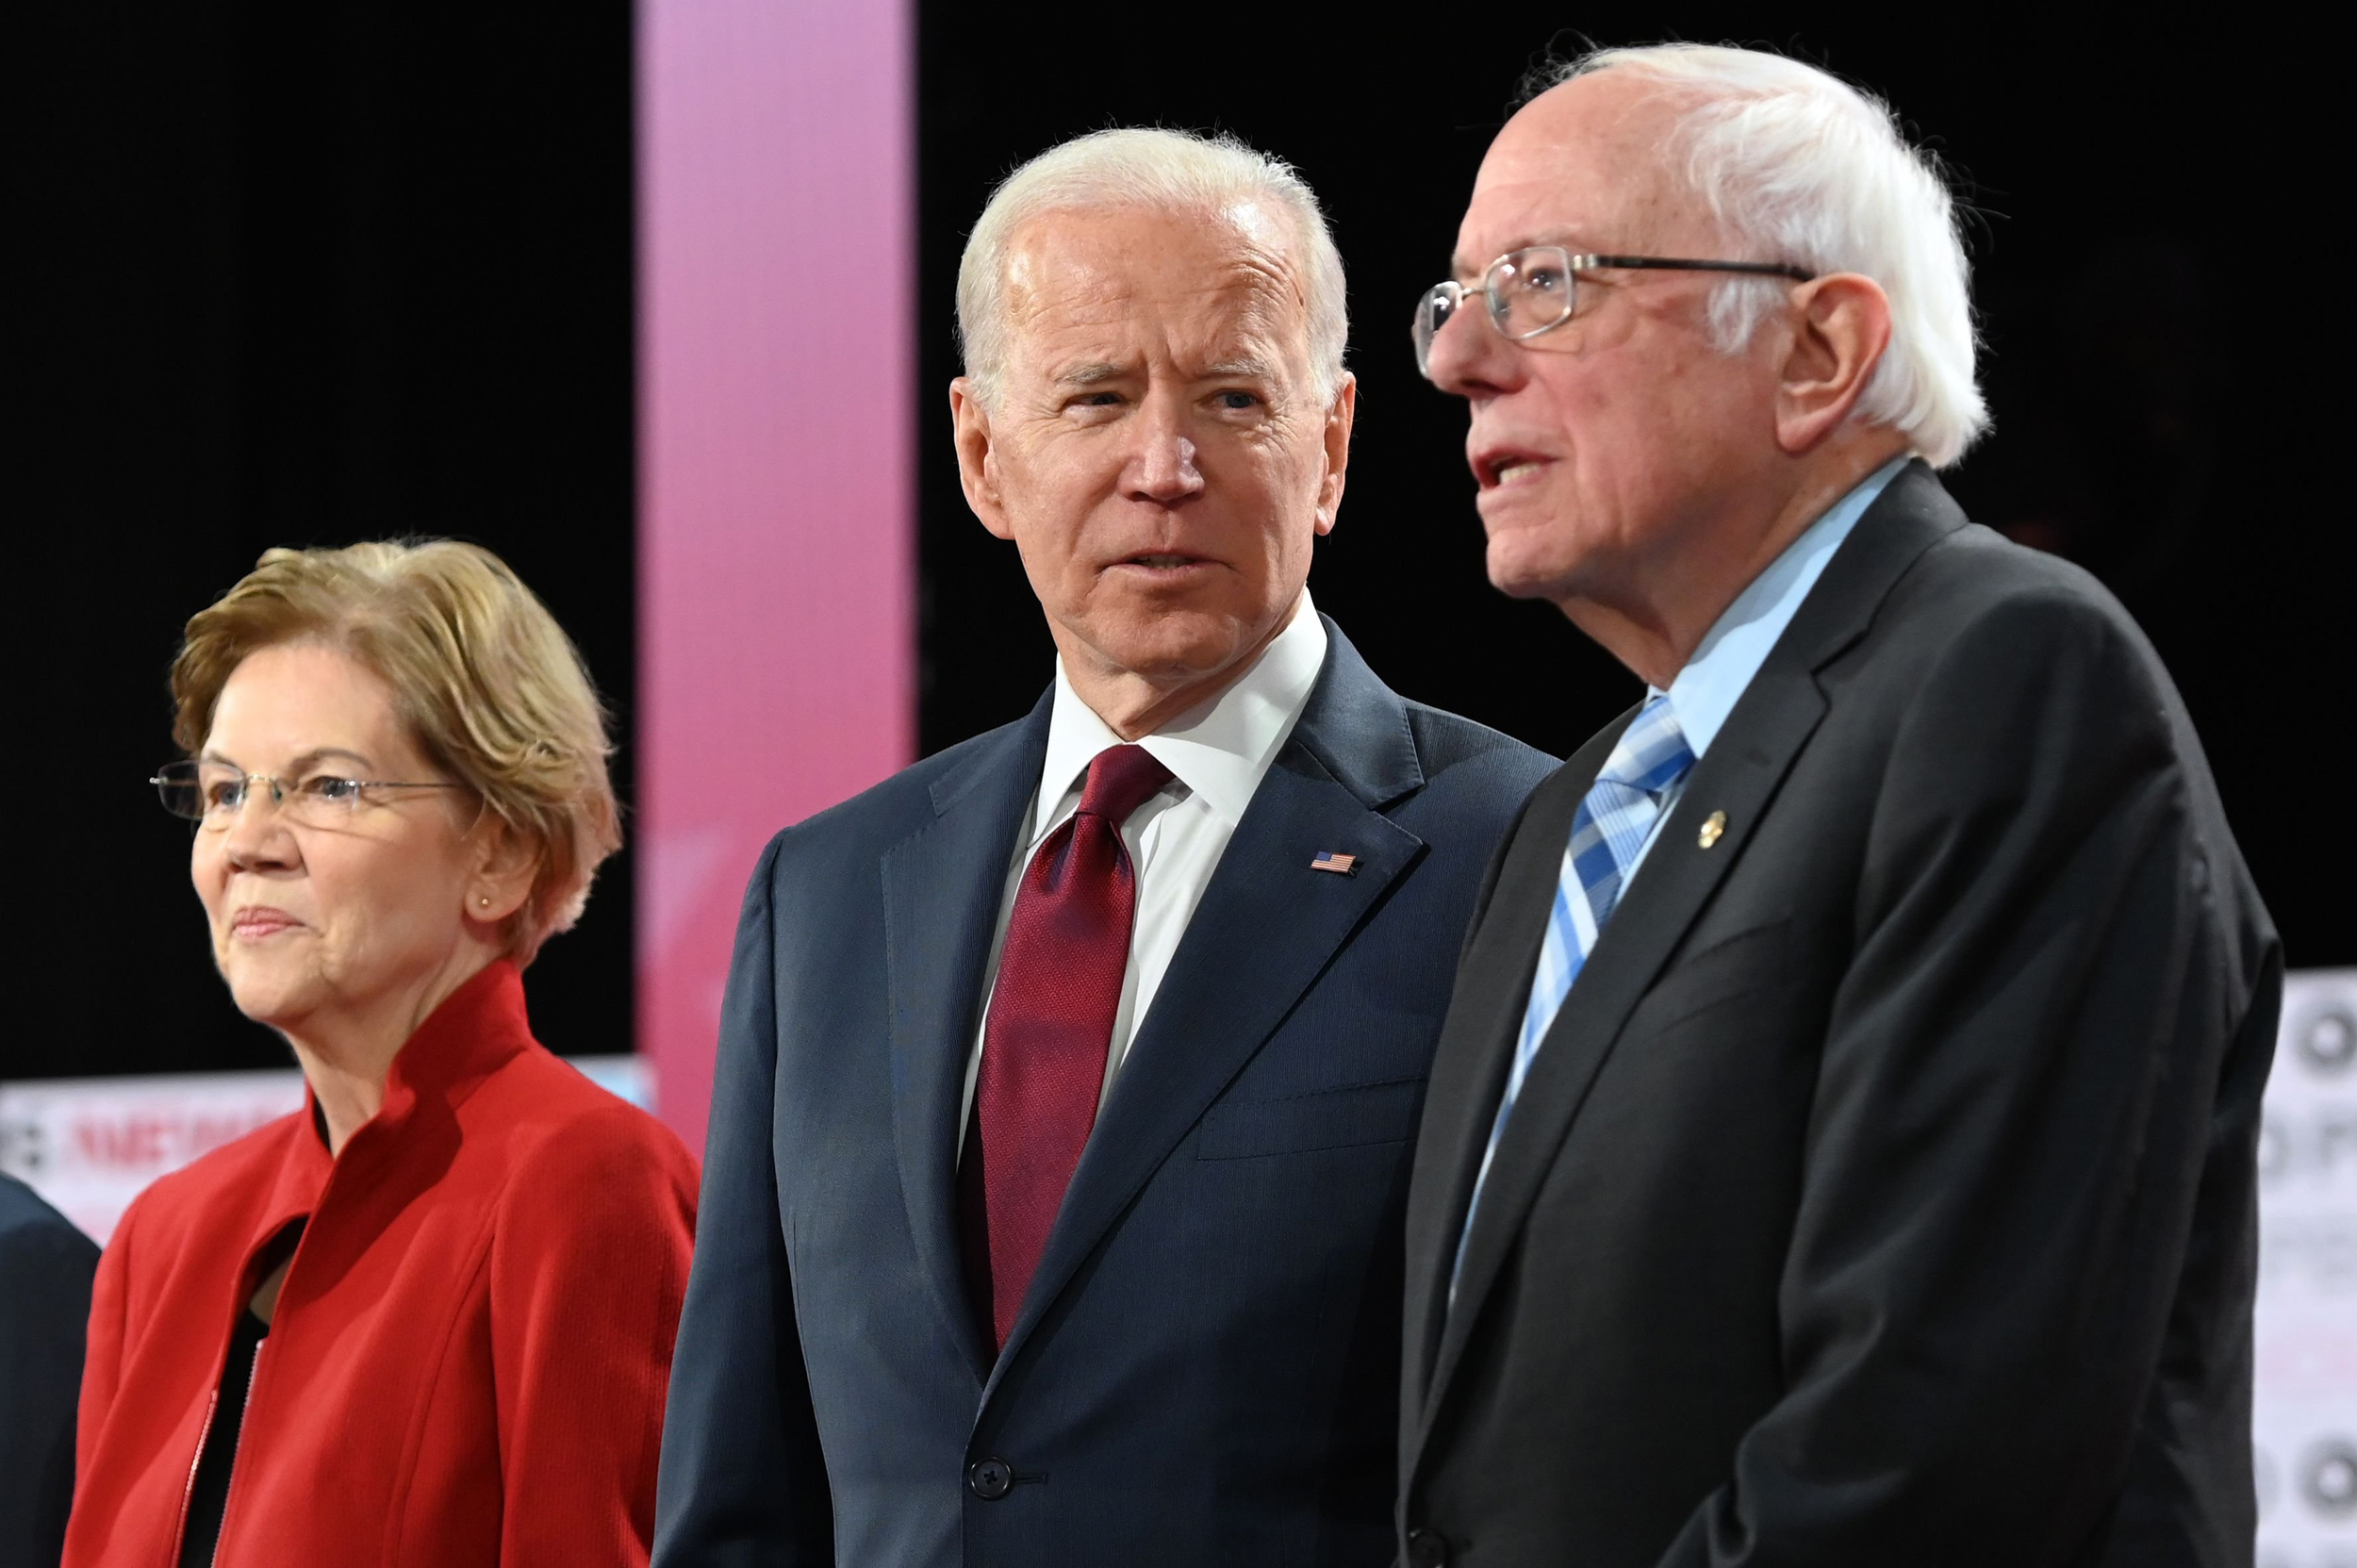 Biden-demands-apology-from-Sanders-over-'doctored'-video-on-Social-Security